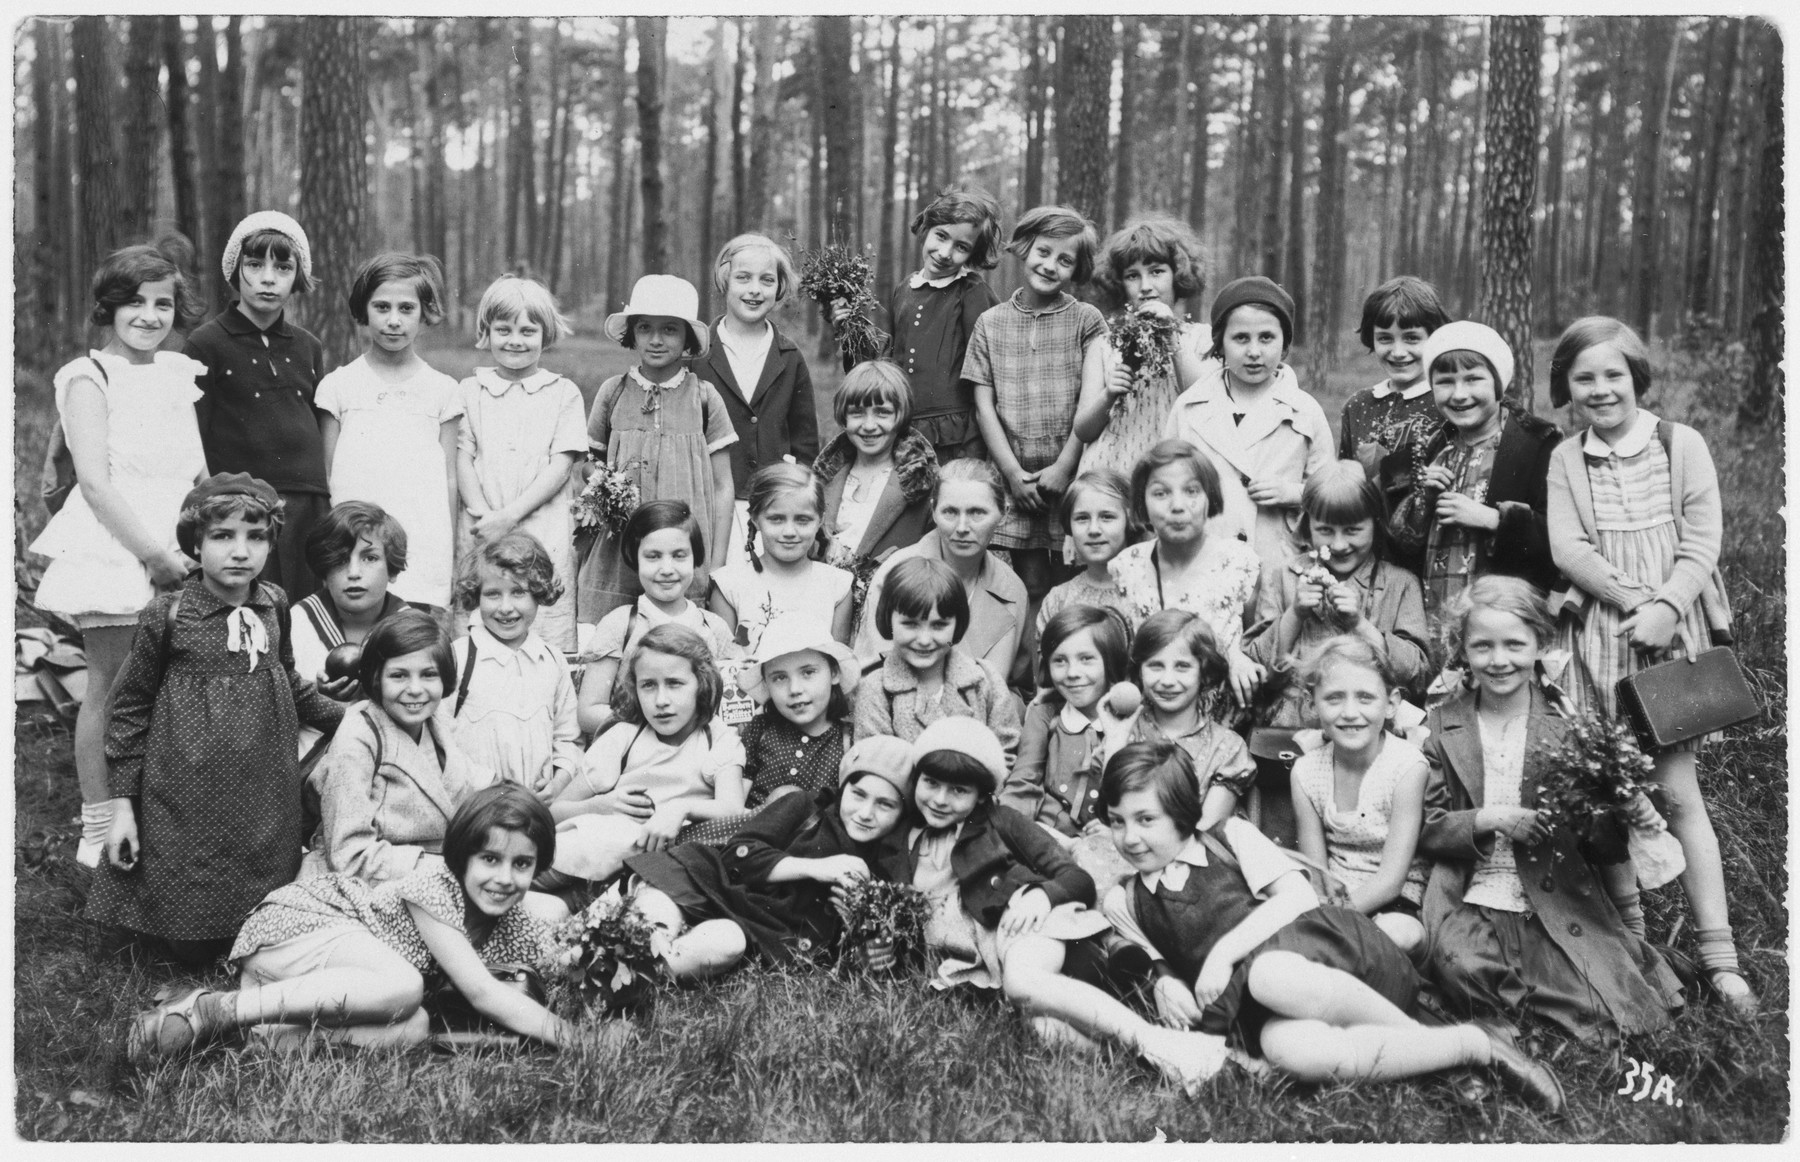 Group portrait of girls, about half of whom are Jewish, from the Hoenstaofen Strasse school, taken during a class outing in a wooded park.  Among those pictured is Ruth Cohn.